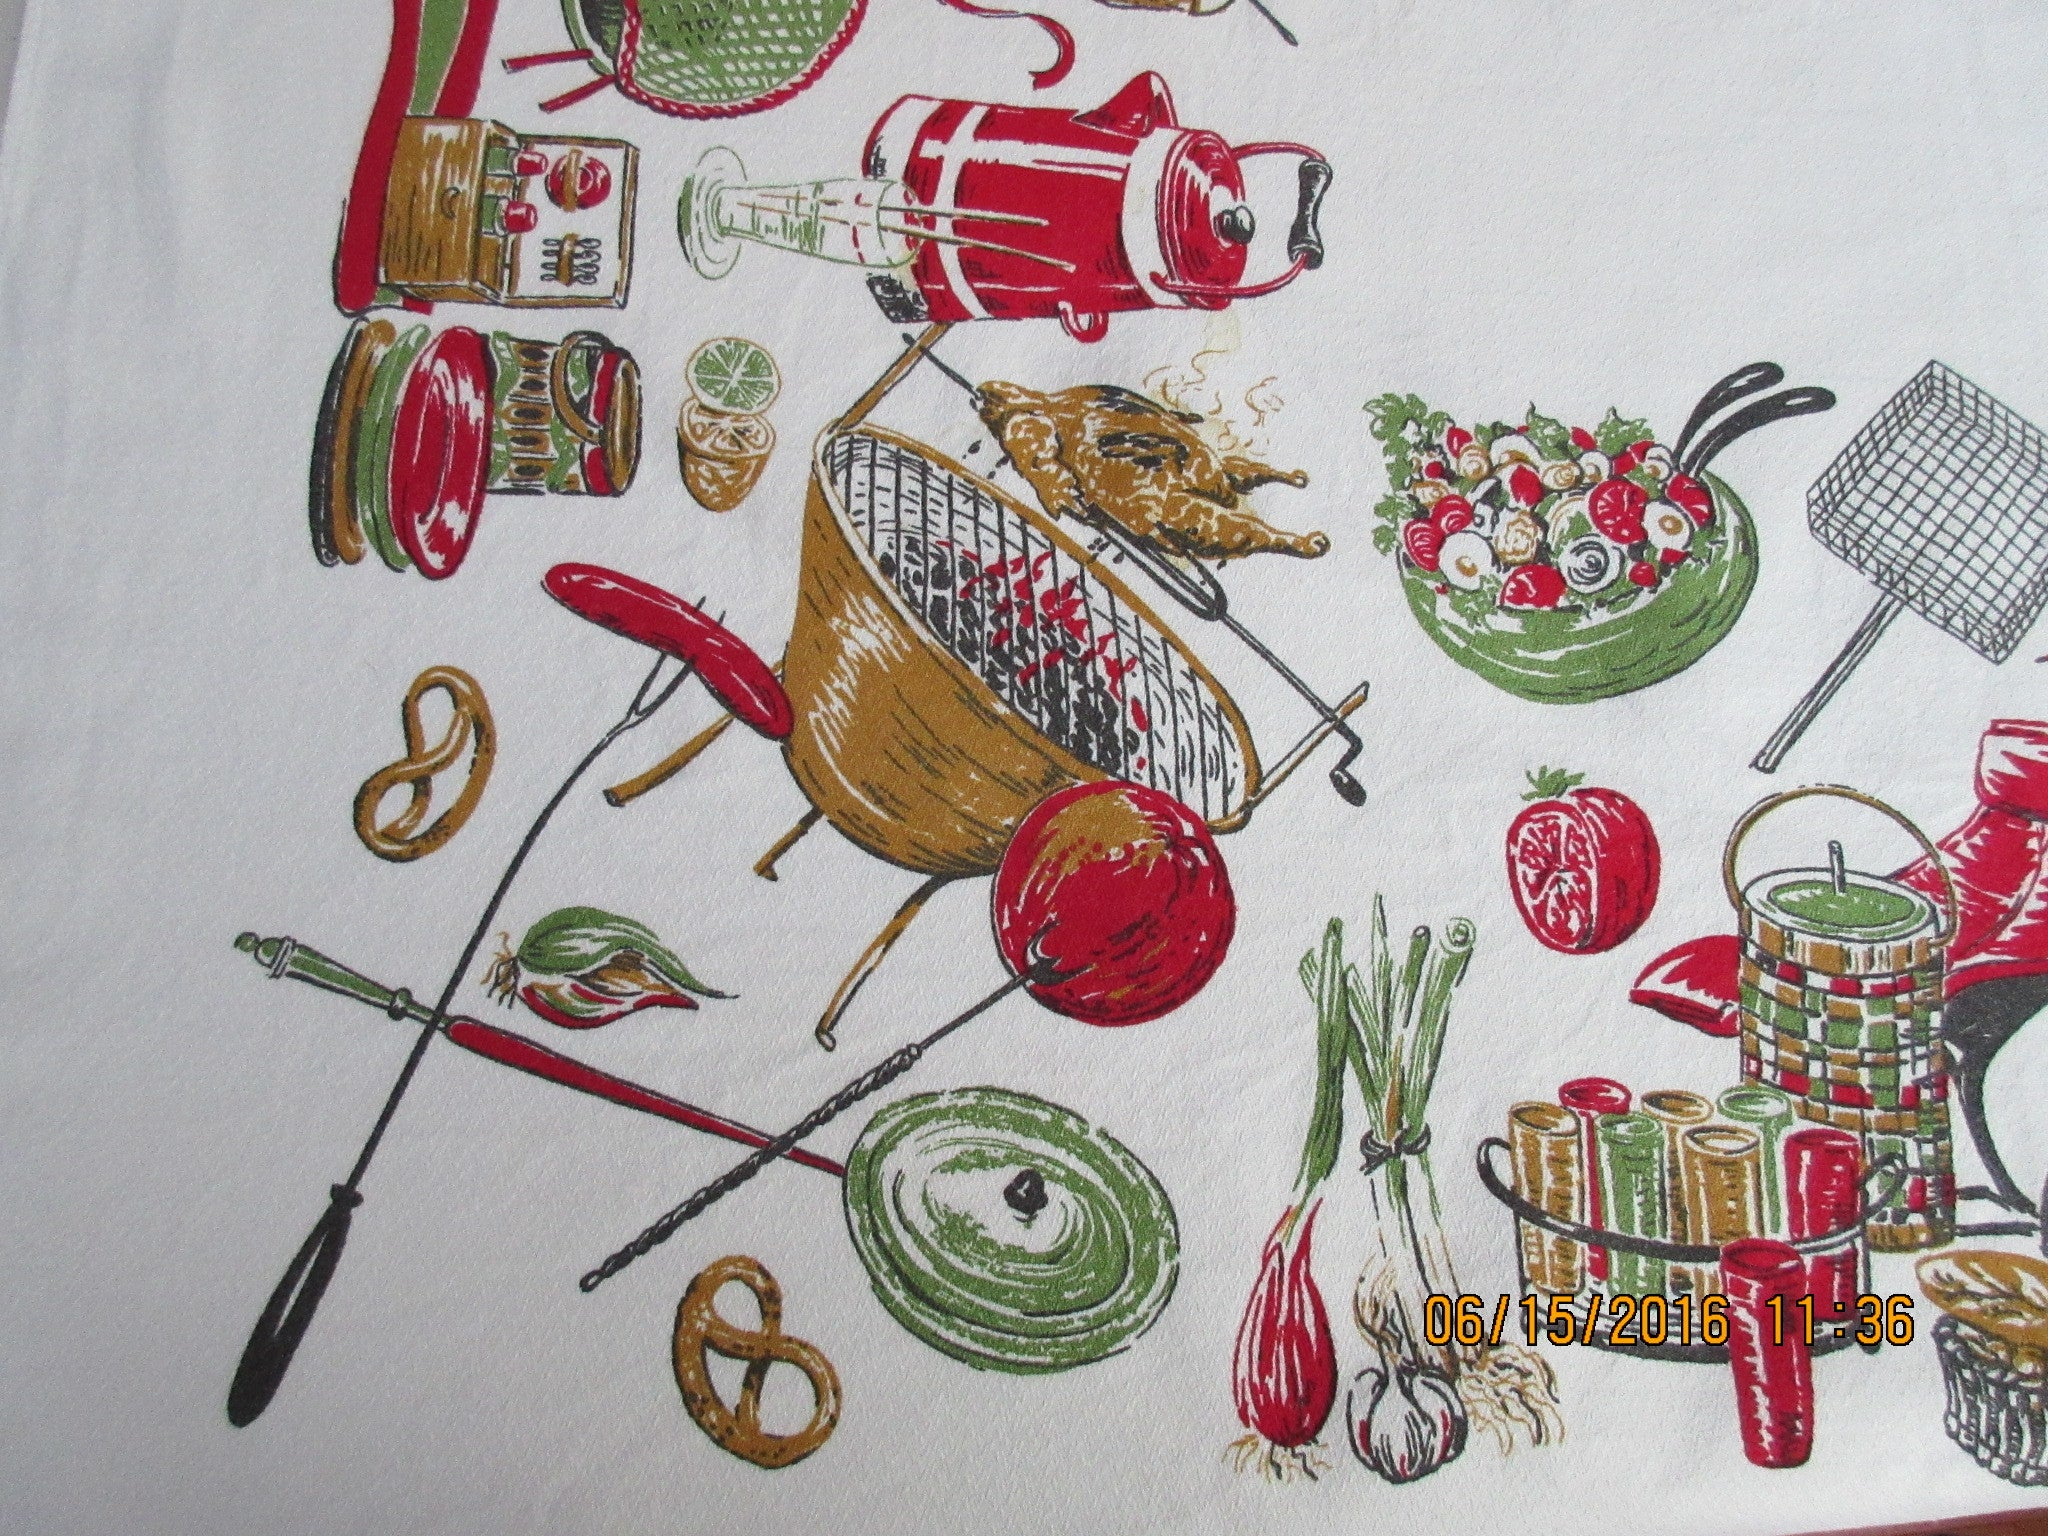 HTF Broderie Cookout Barbecue BBQ Novelty Vintage Printed Tablecloth (53 X 48)